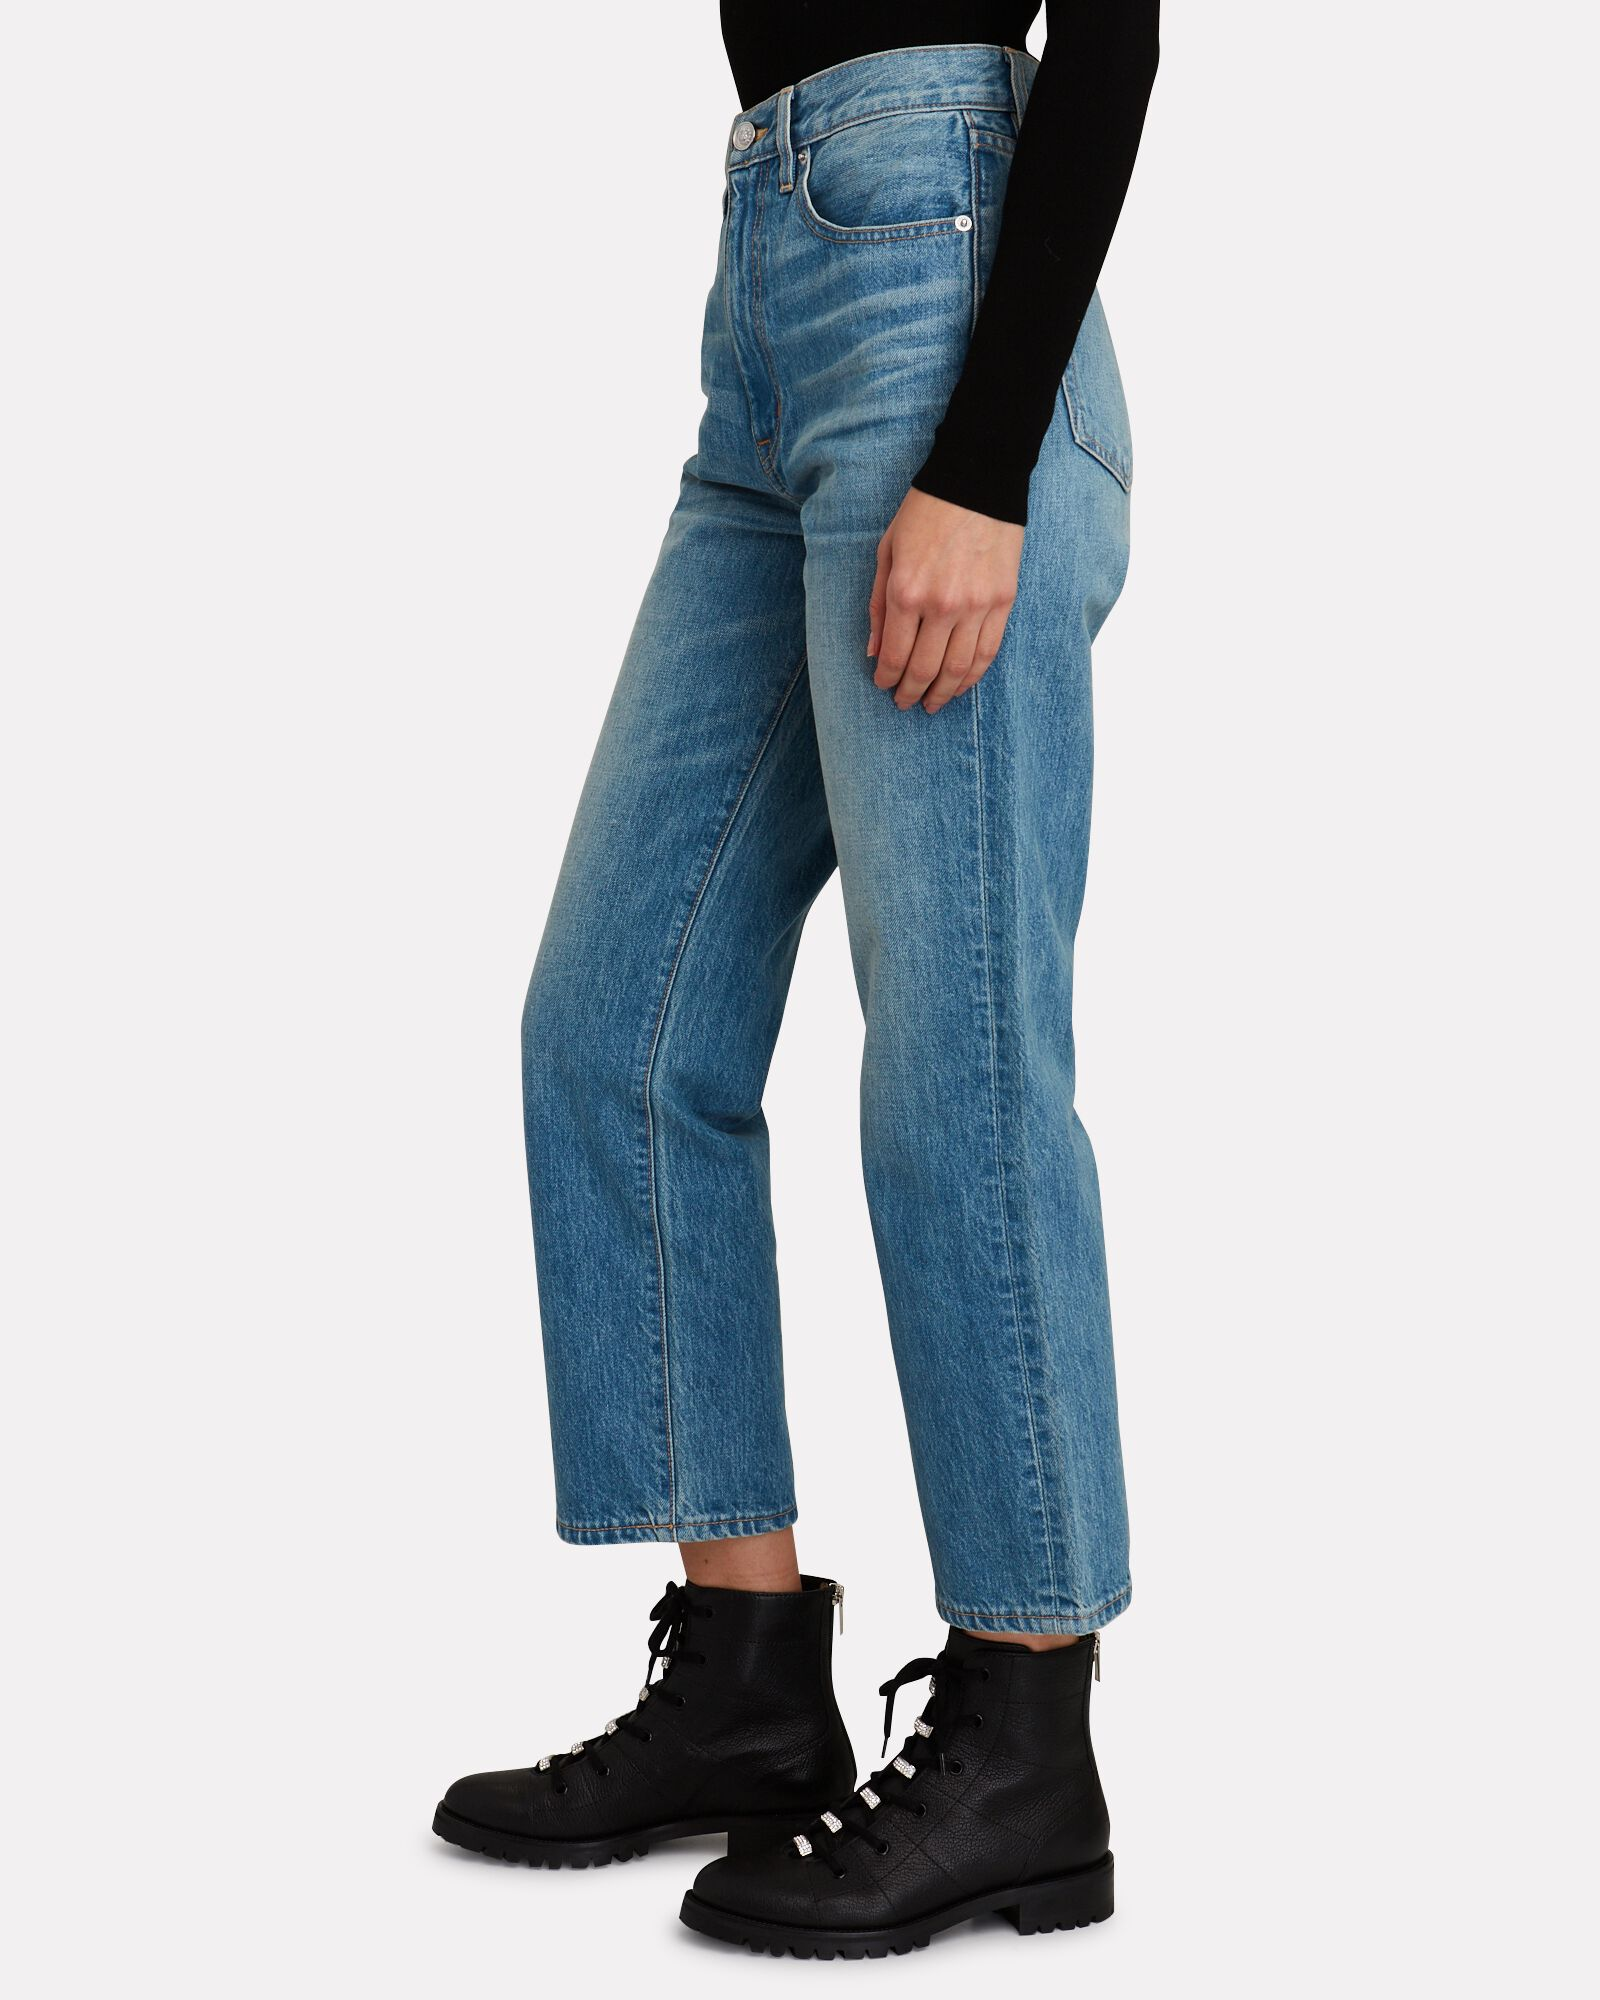 London Cropped High-Rise Jeans, SWEET THING, hi-res